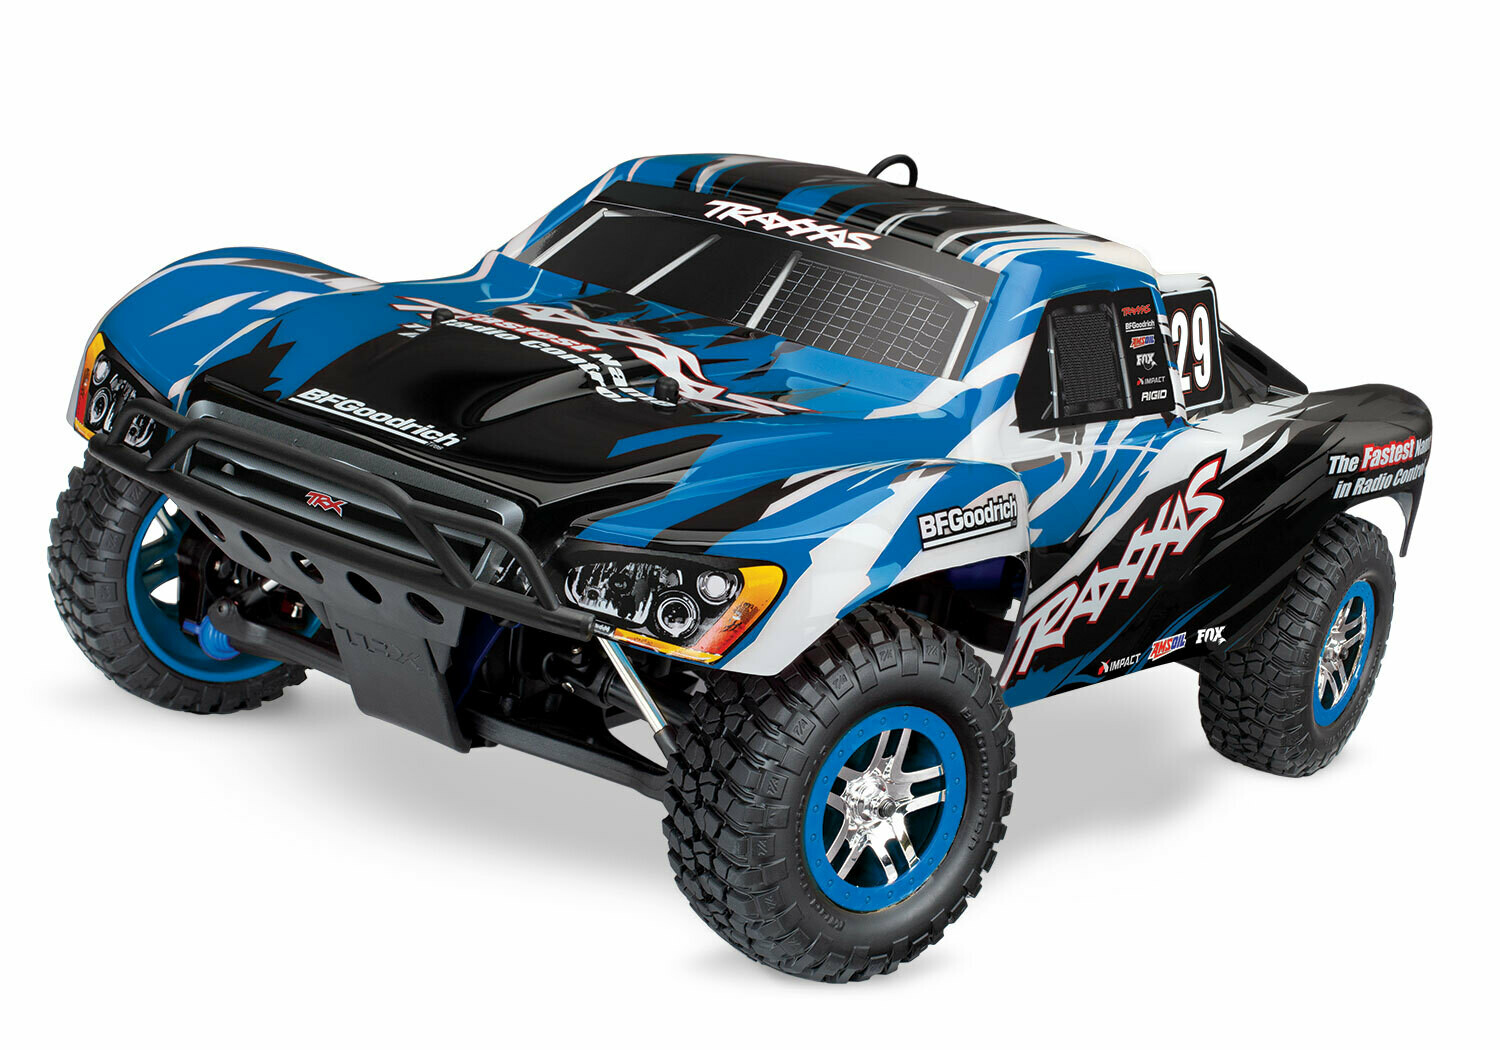 Traxxas Slayer Pro 4x4 Nitro Short Course Racing Truck (+ TQi, TSM, TRX3.3)